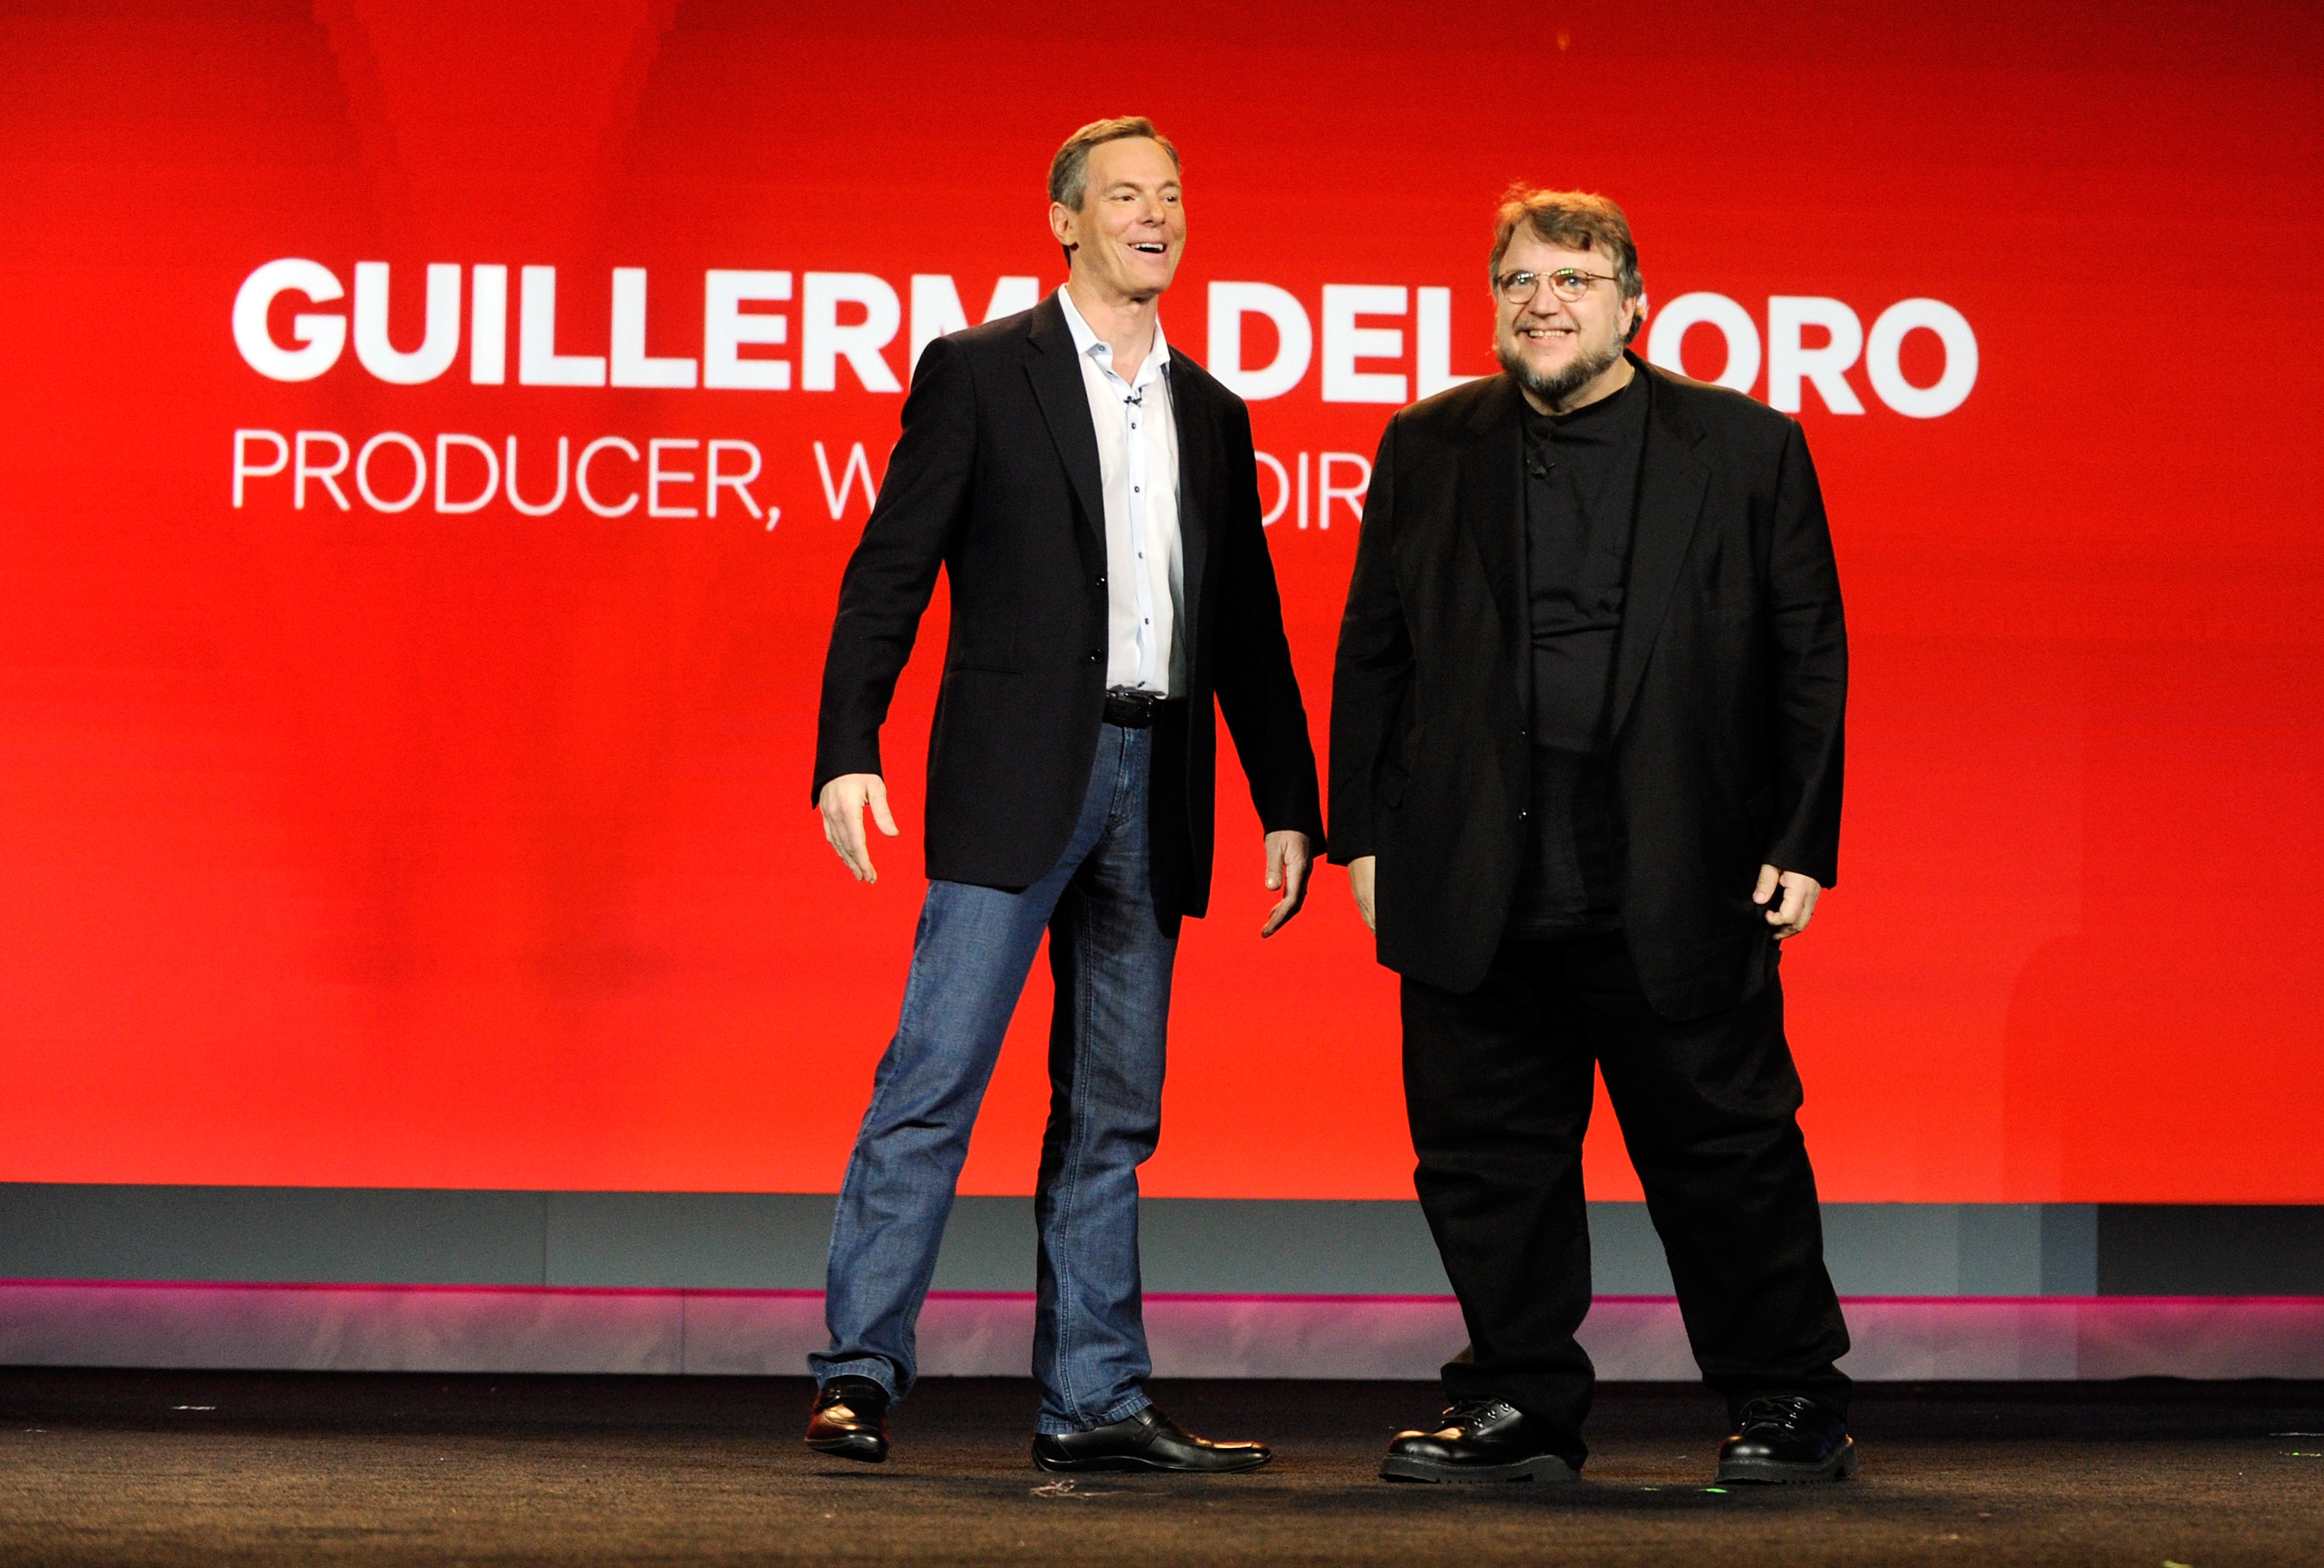 LAS VEGAS, NV - JANUARY 07: Qualcomm Inc., Chairman and CEO Dr. Paul E. Jacobs (L) and director Guillermo del Toro appear on stage during a keynote address at the 2013 International CES at The Venetian on January 7, 2013 in Las Vegas, Nevada. CES, the world's largest annual consumer technology trade show, runs from January 8-11 and is expected to feature 3,100 exhibitors showing off their latest products and services to about 150,000 attendees. - AFP Photo